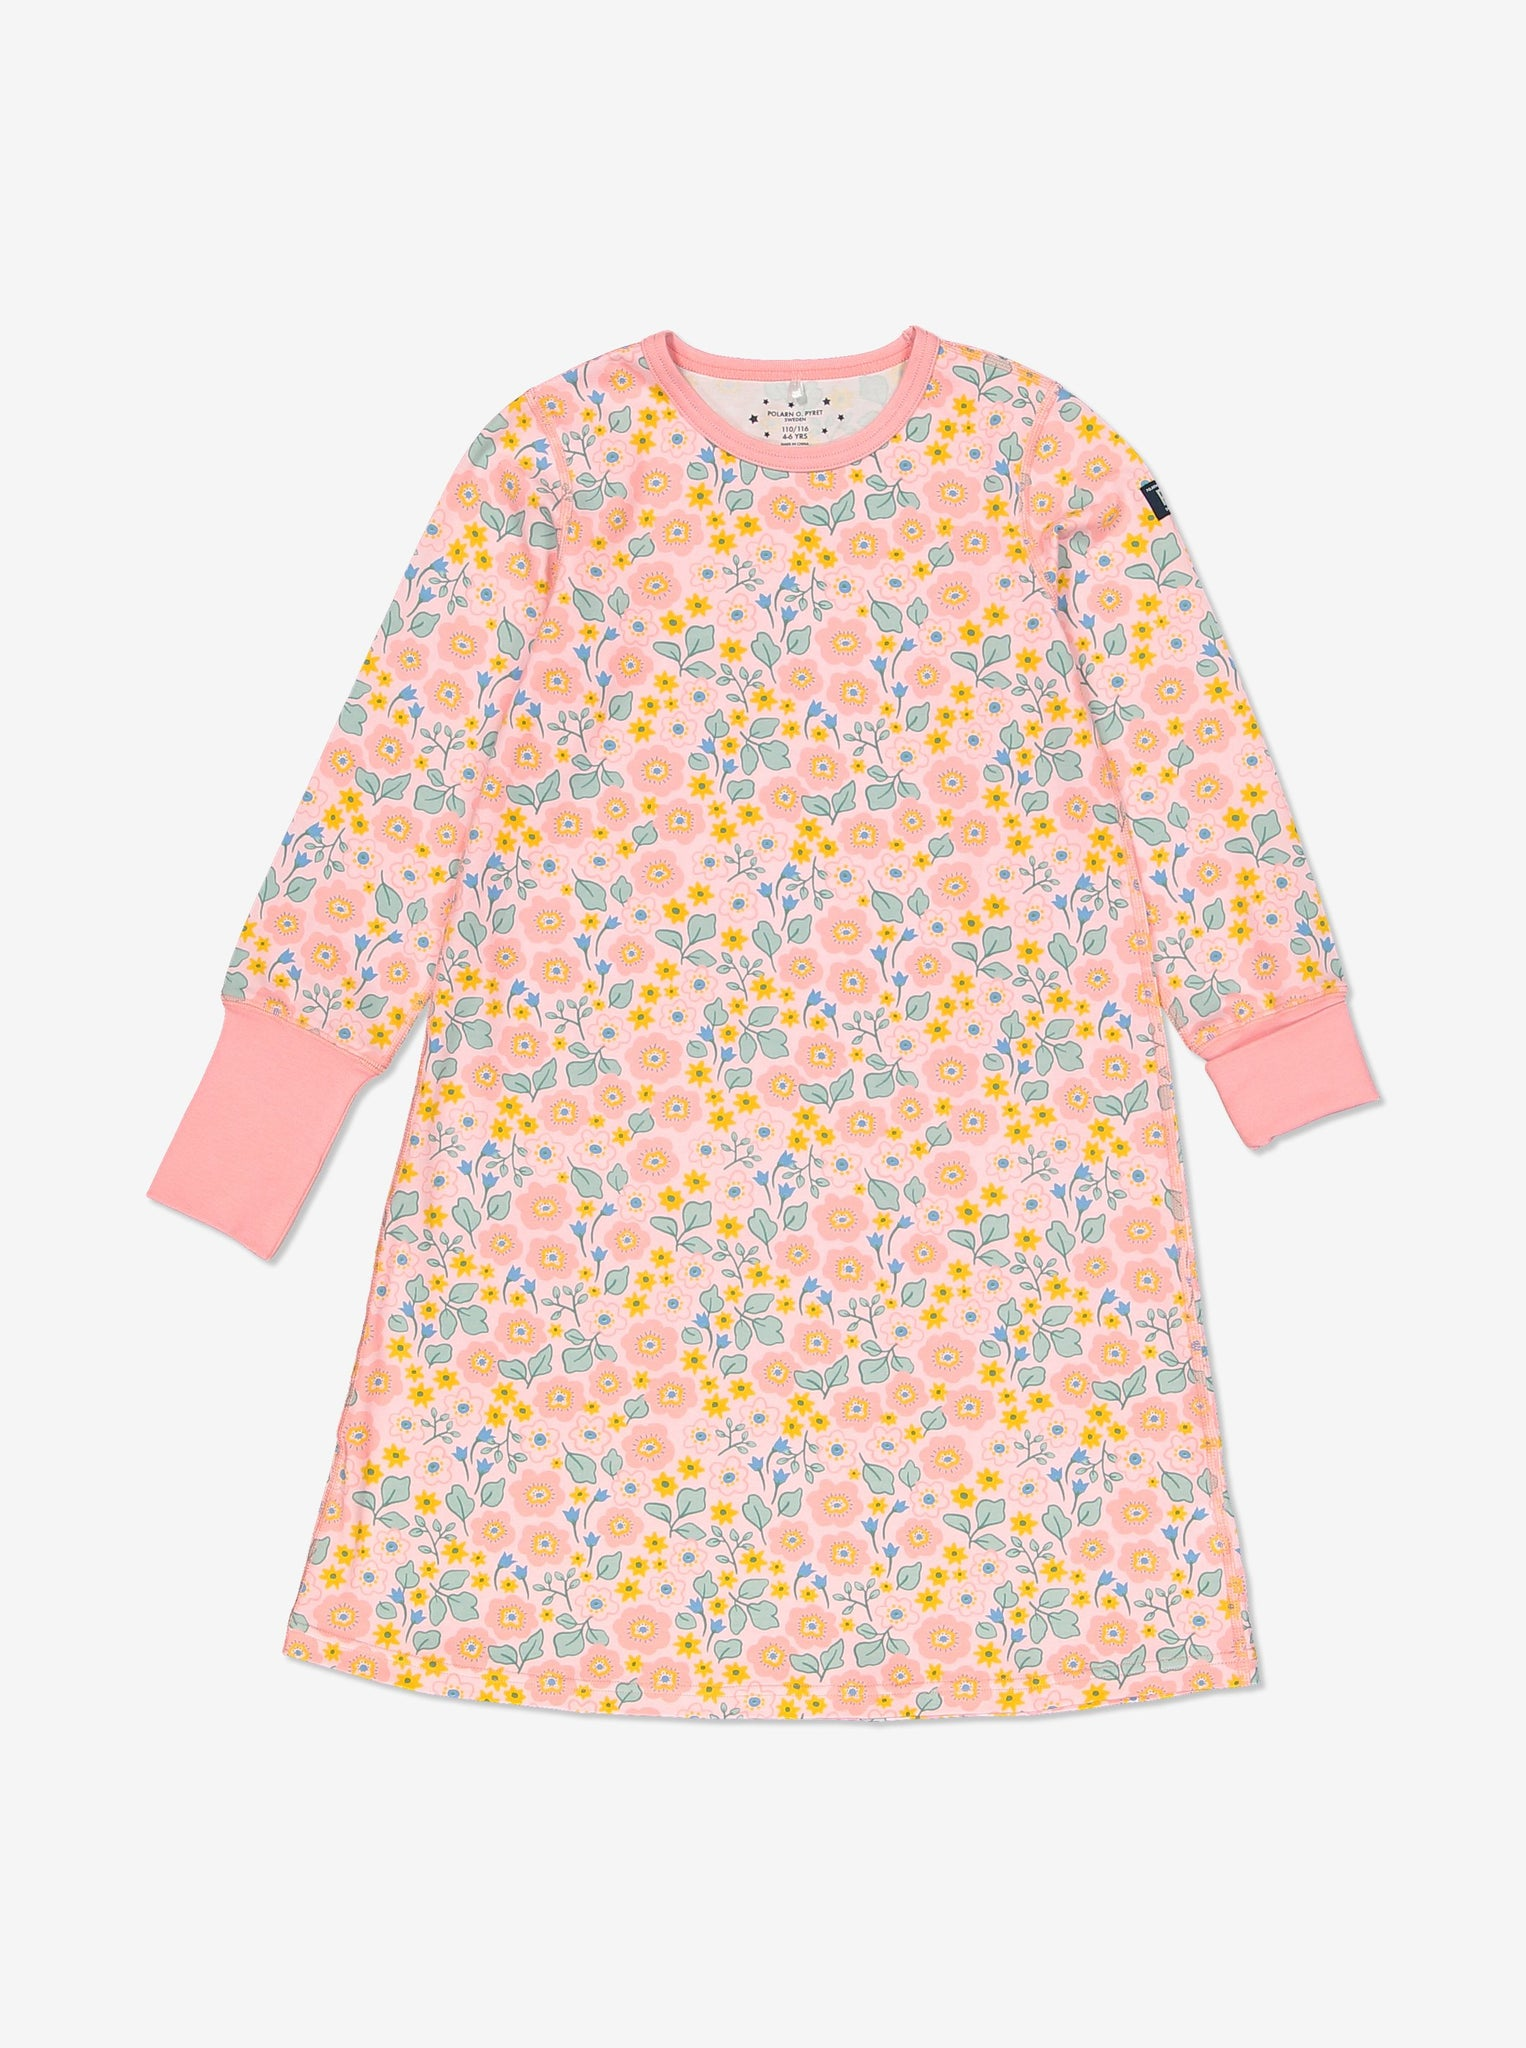 Floral Kids Nightdress-Girl-1-12y-Pink